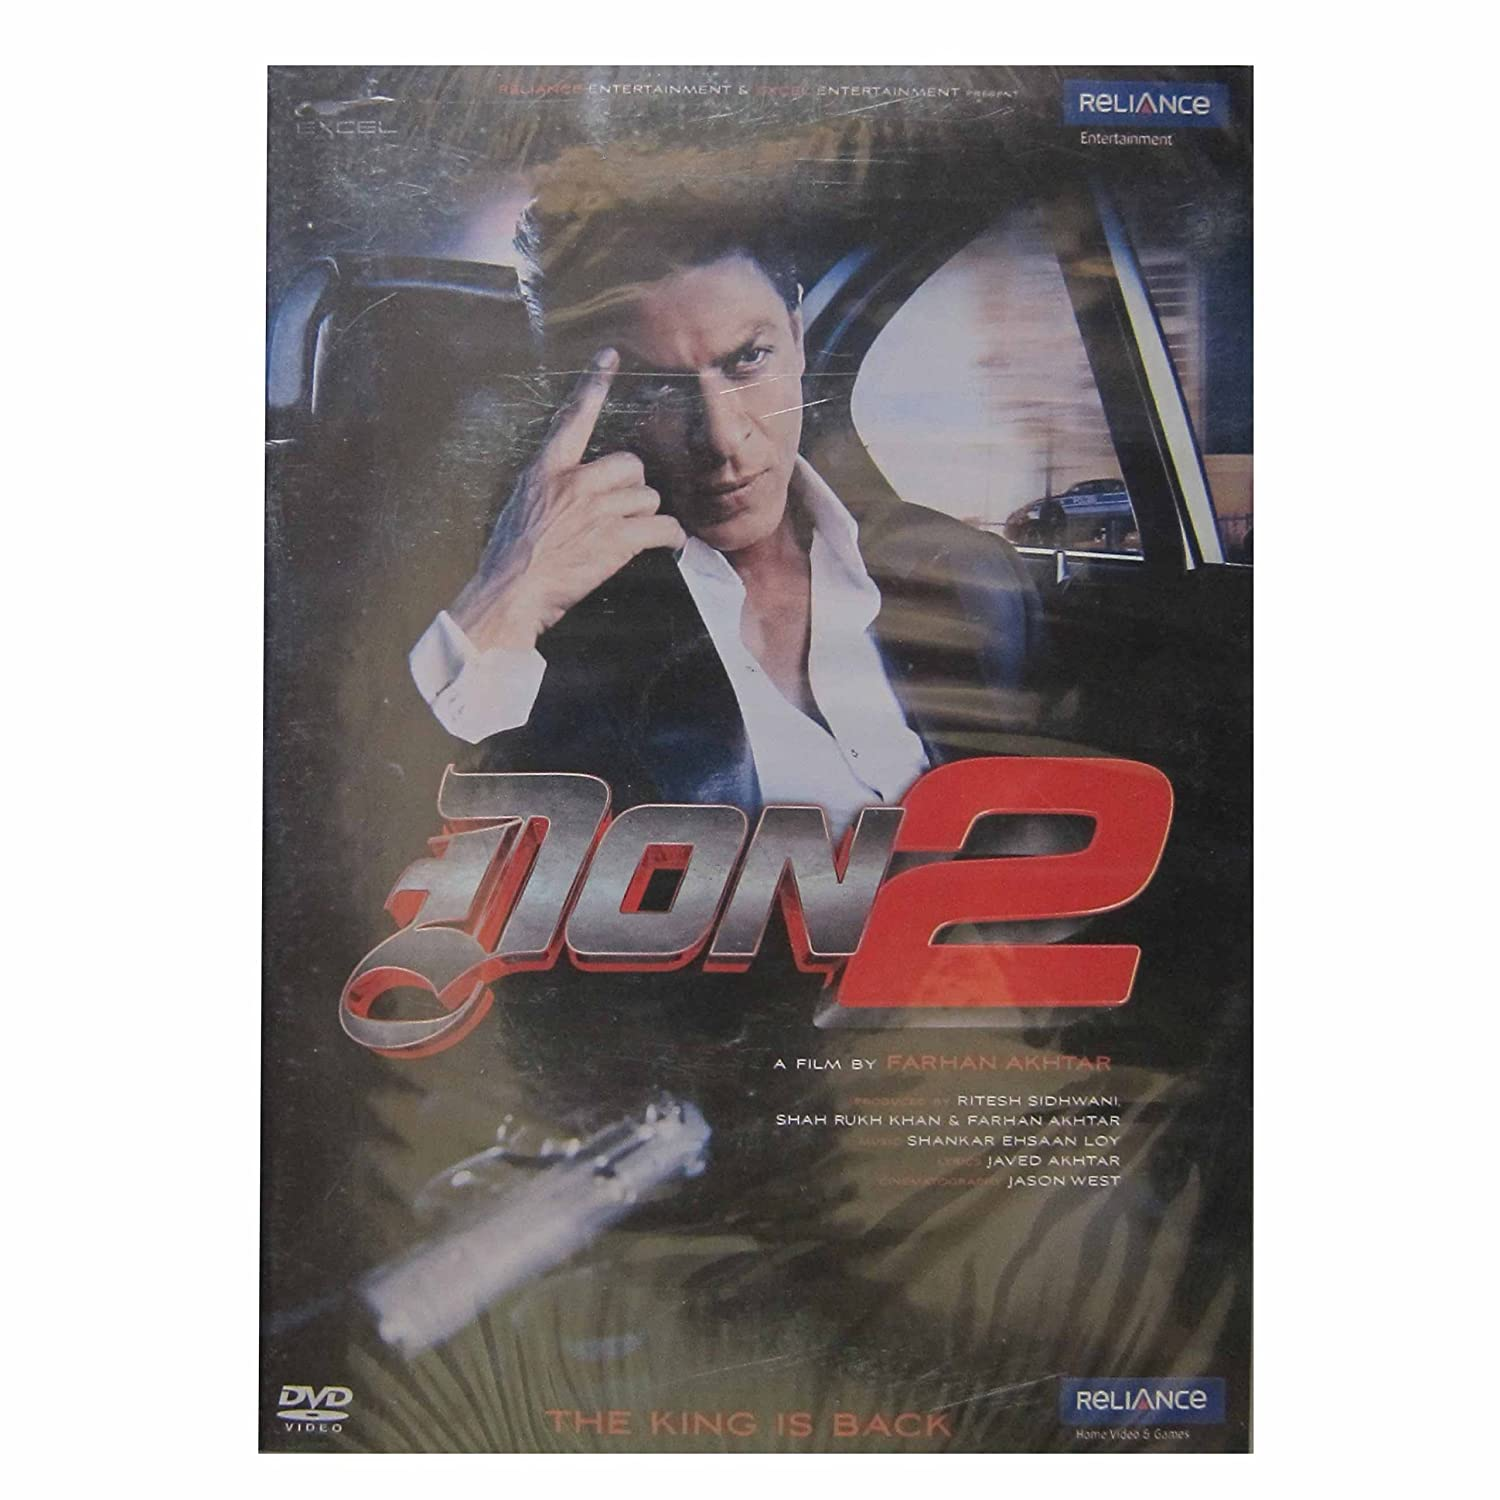 Amazon.com: Don2: Shahrukh Khan, Farhan Akhtar, Ritesh ...